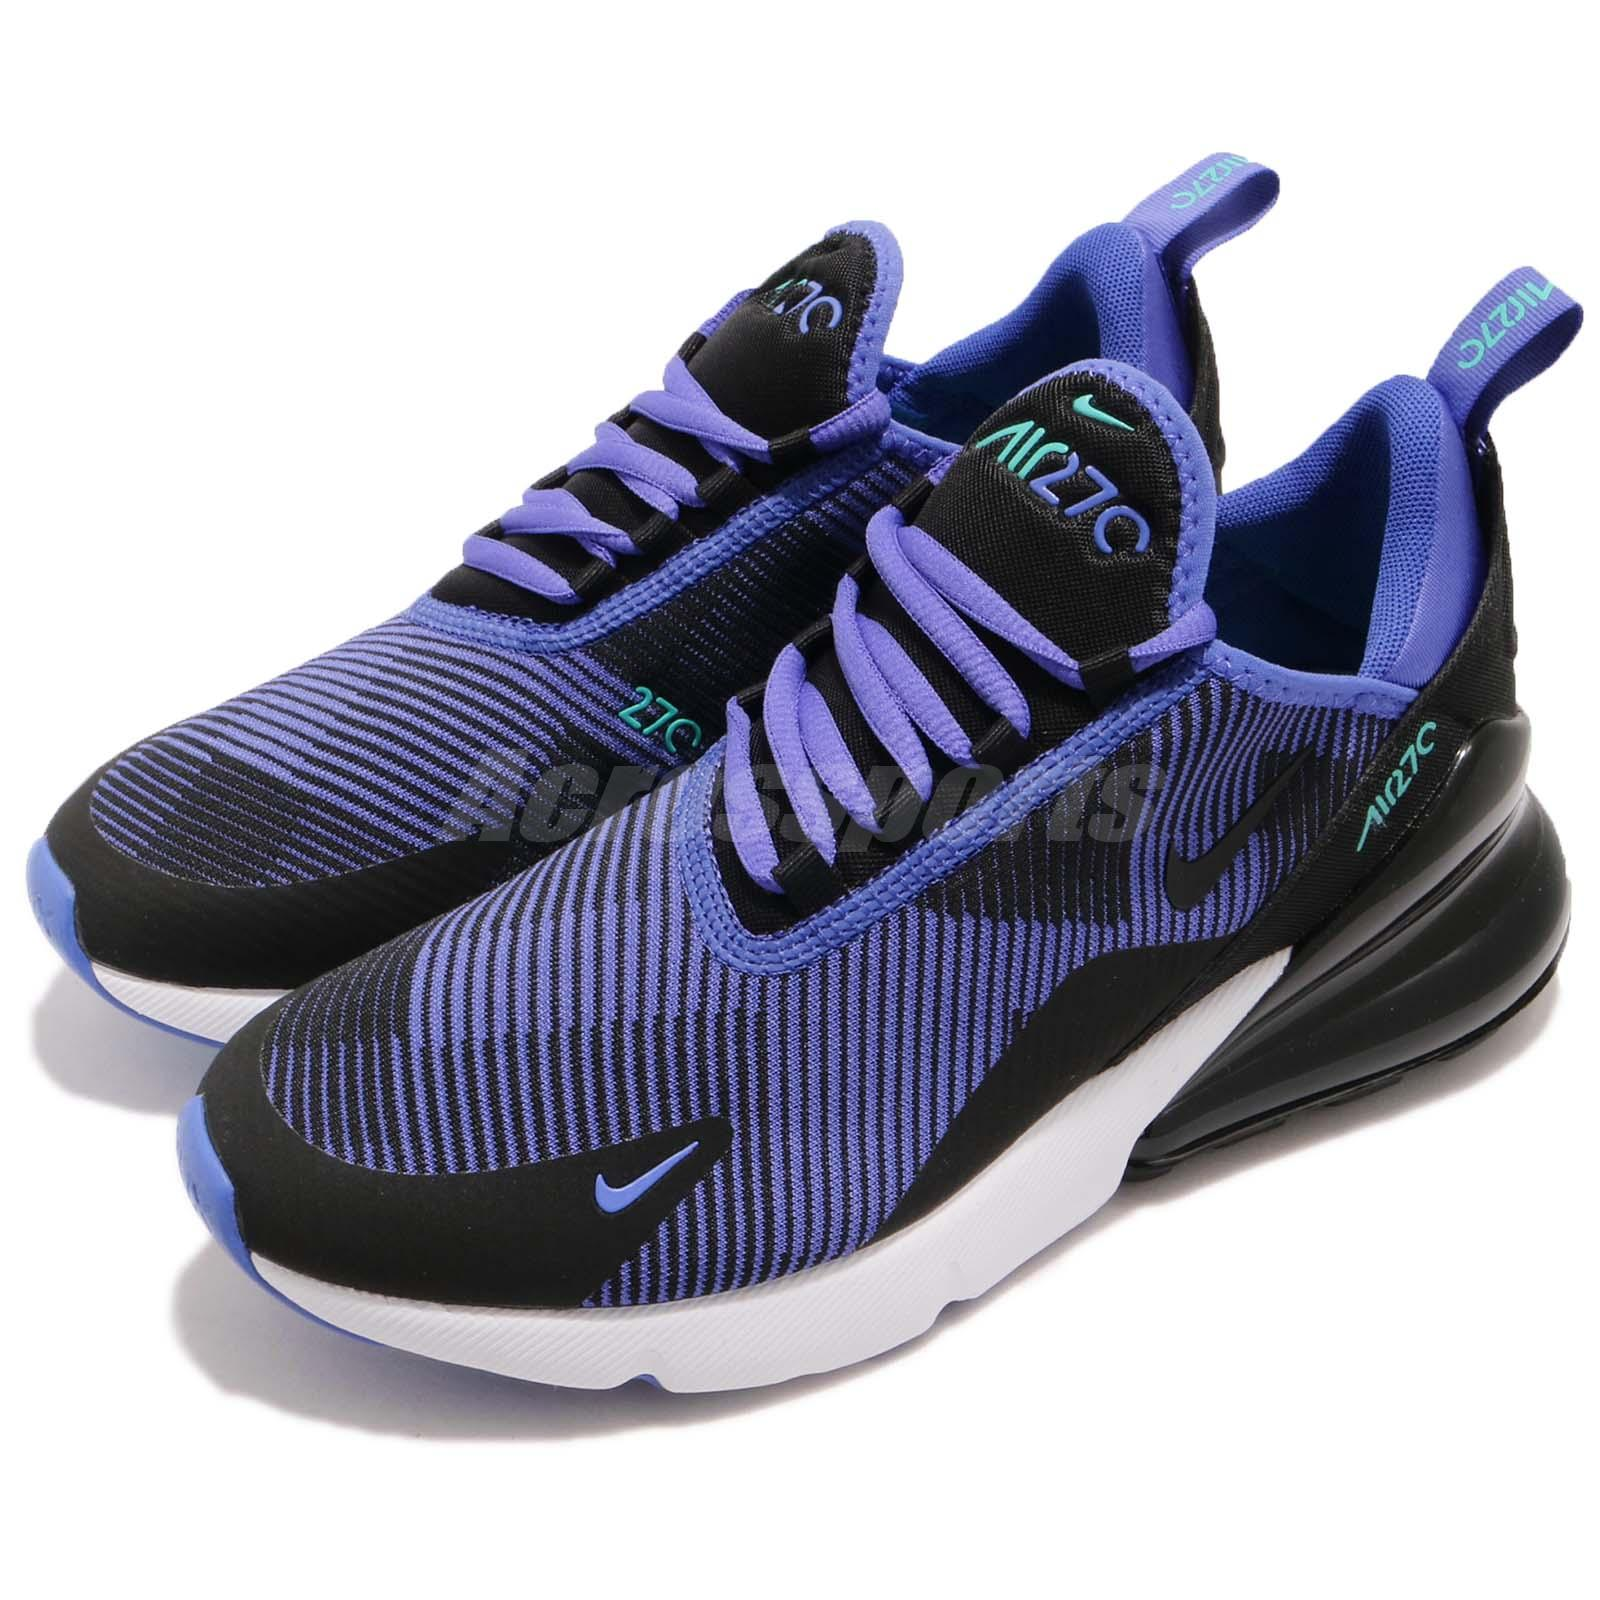 Details about Nike Air Max 270 KJCRD GS Persian Violet Black Kid Youth Women Shoes AR0301-500